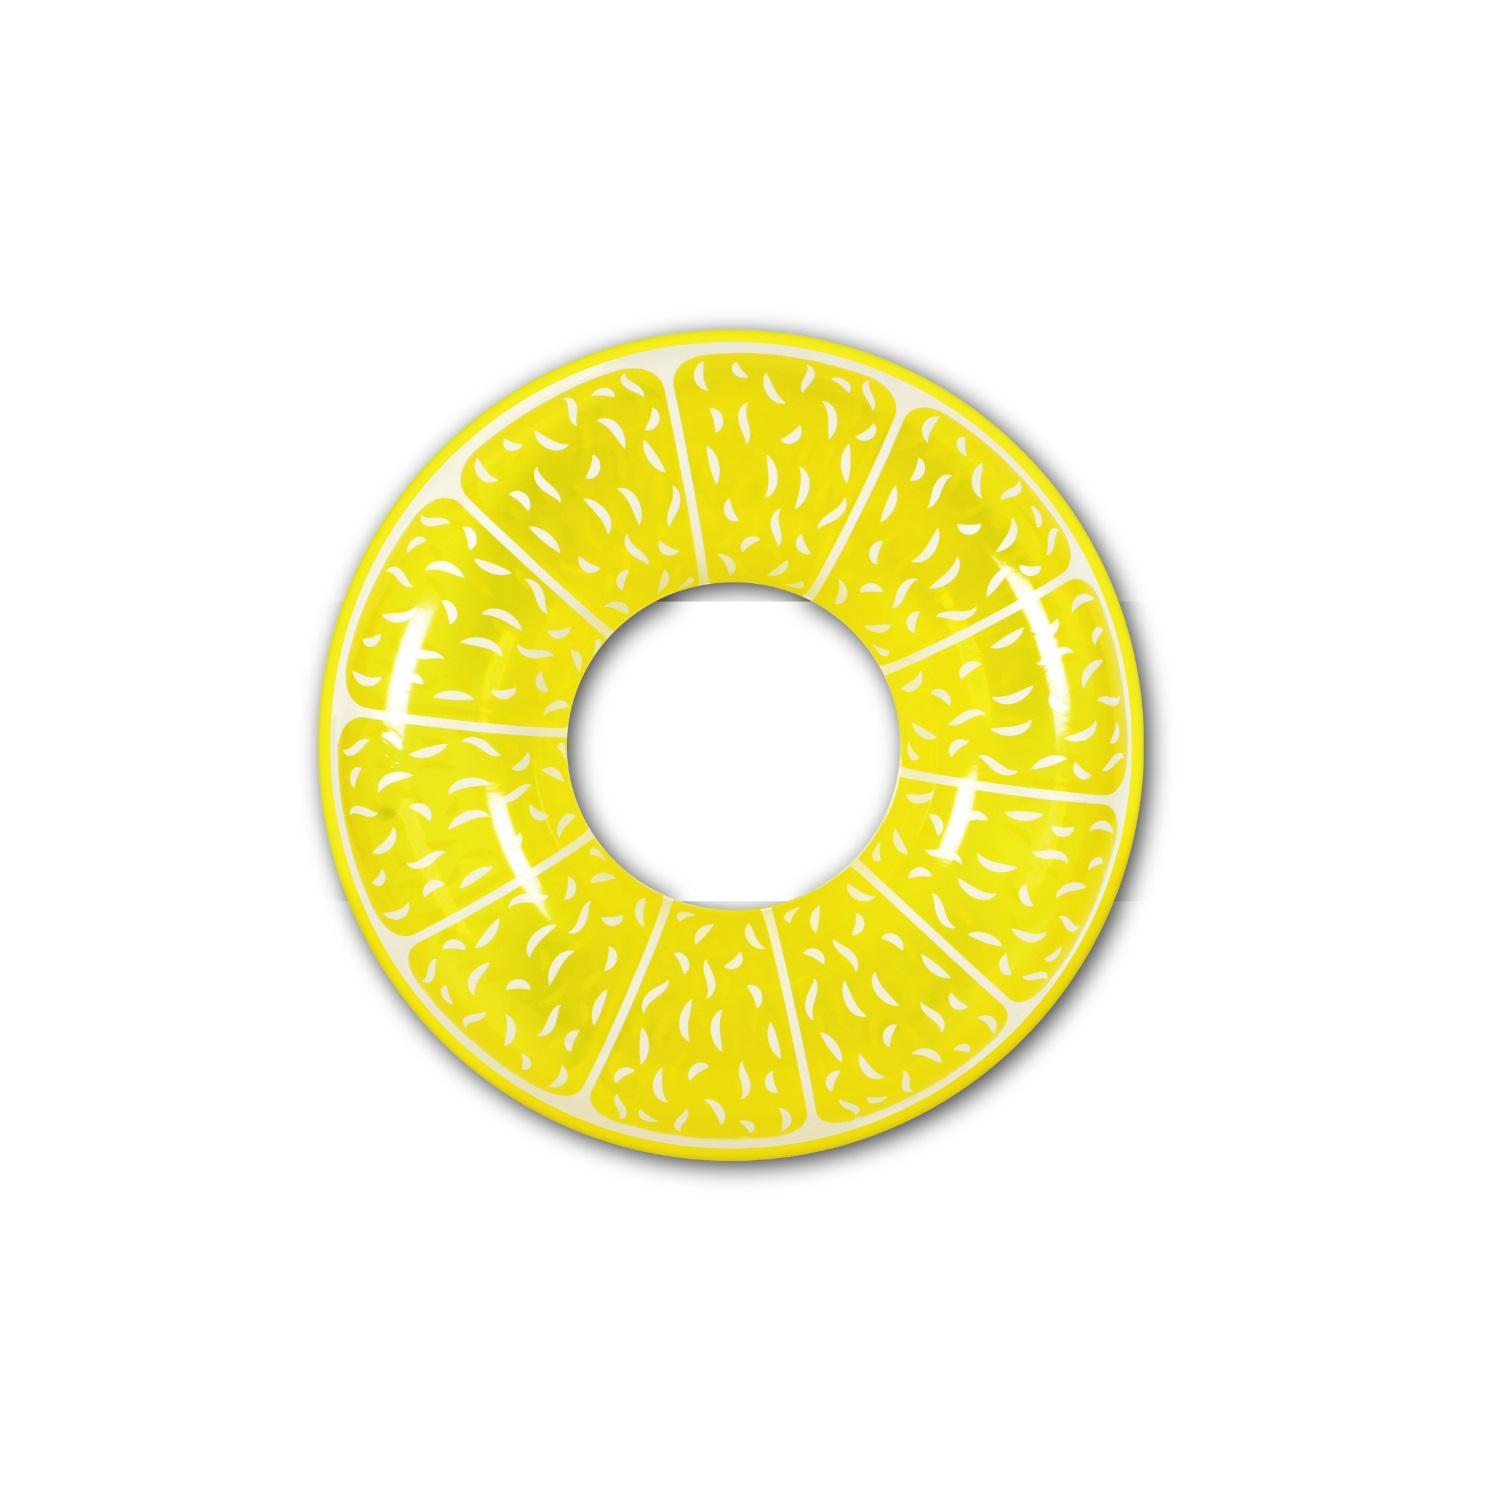 Inflatable Yellow and White Fruit Lemon Inch Inner Tube Pool Float, 47-Inch